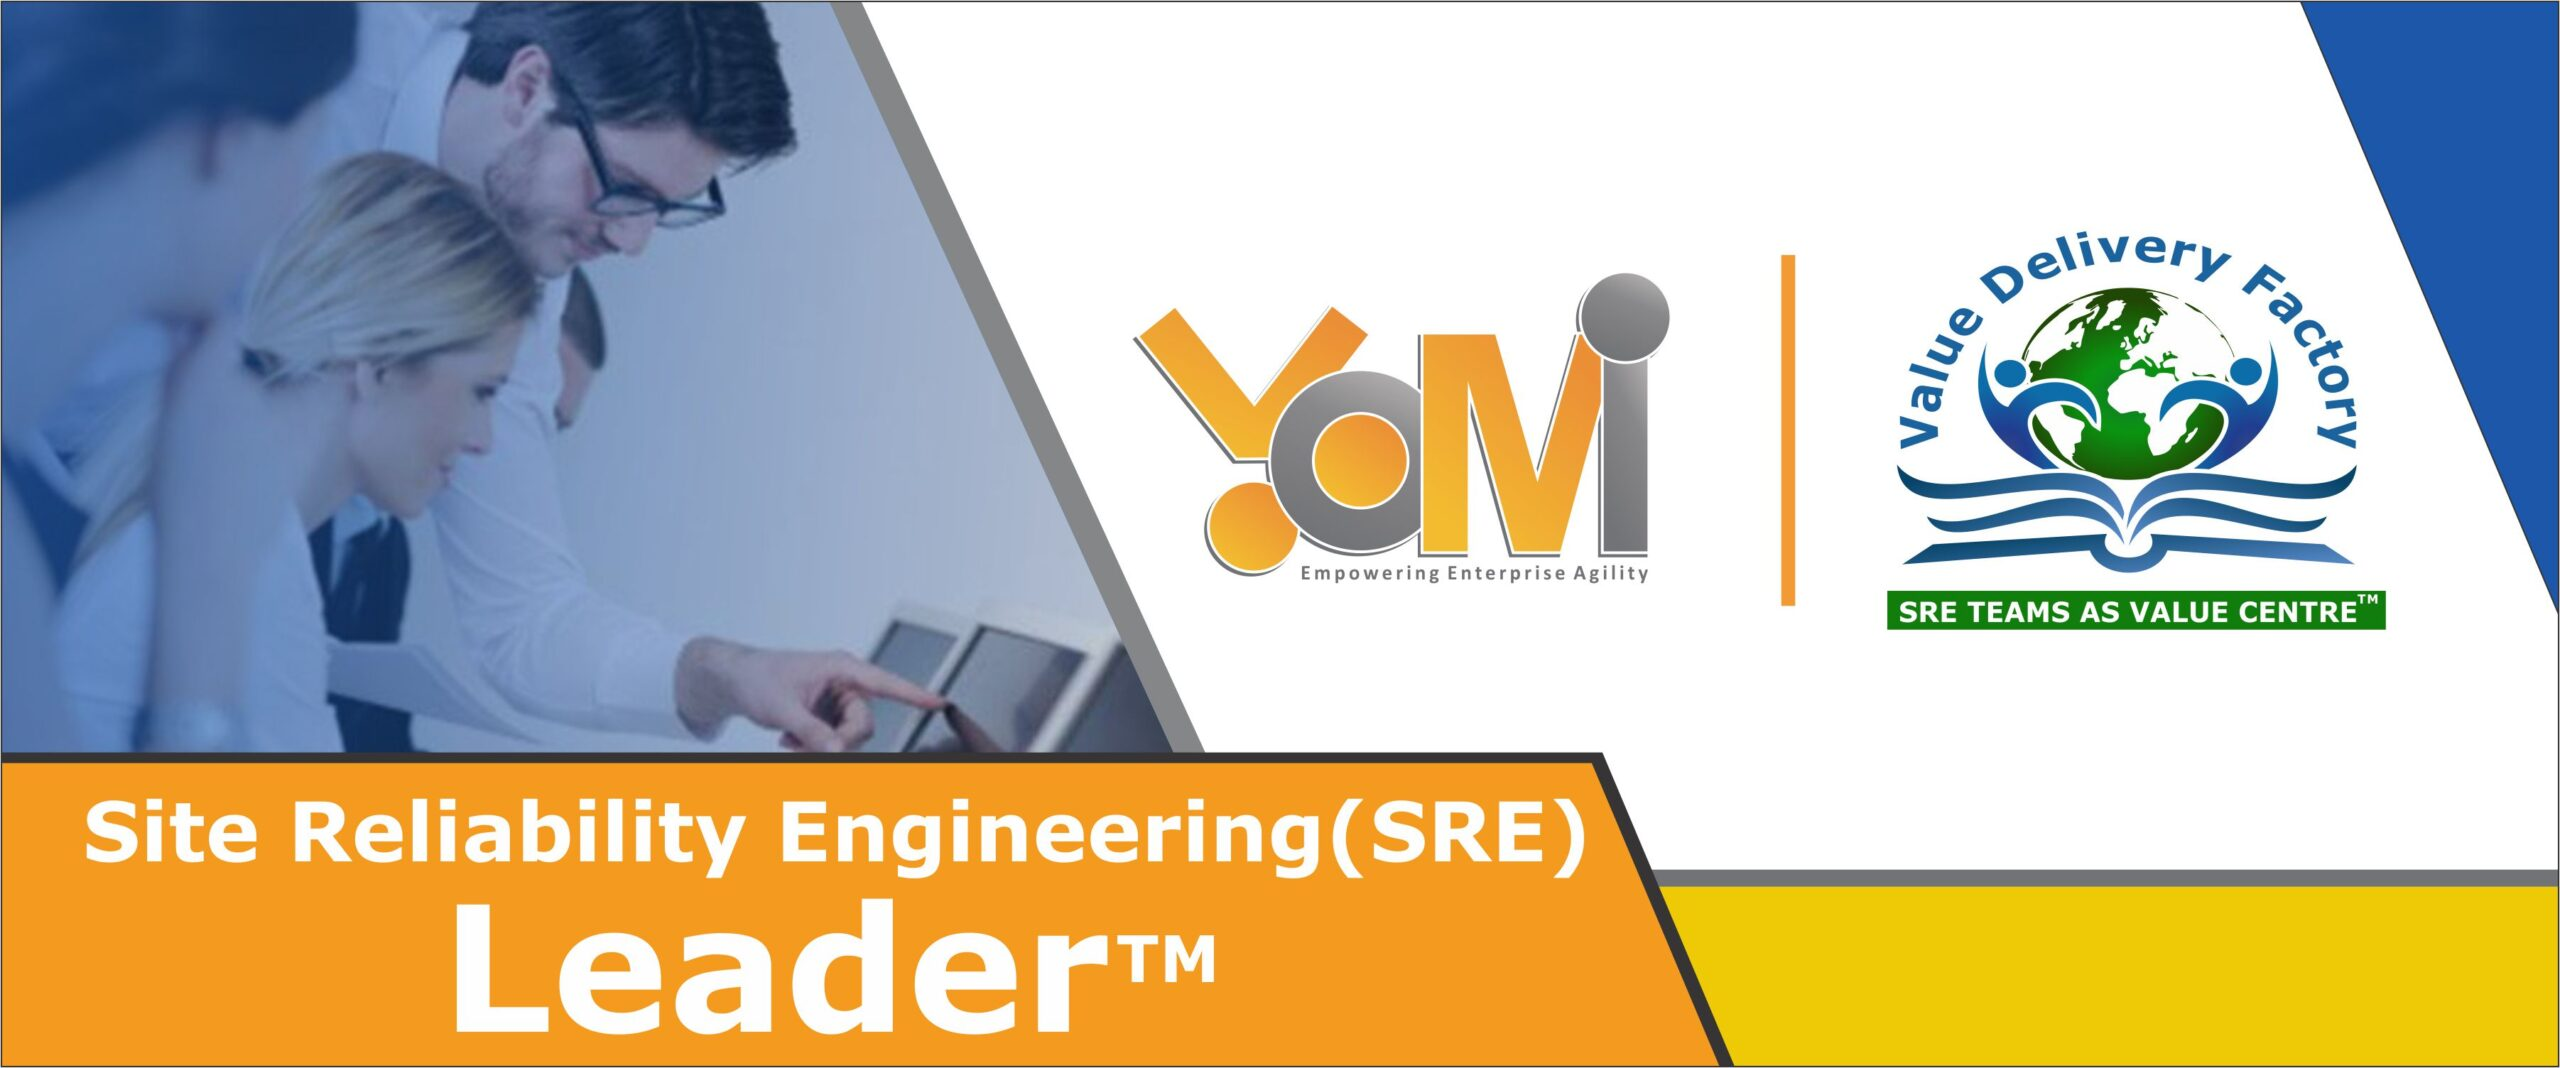 Site Reliability Engineering (SRE) Leader™